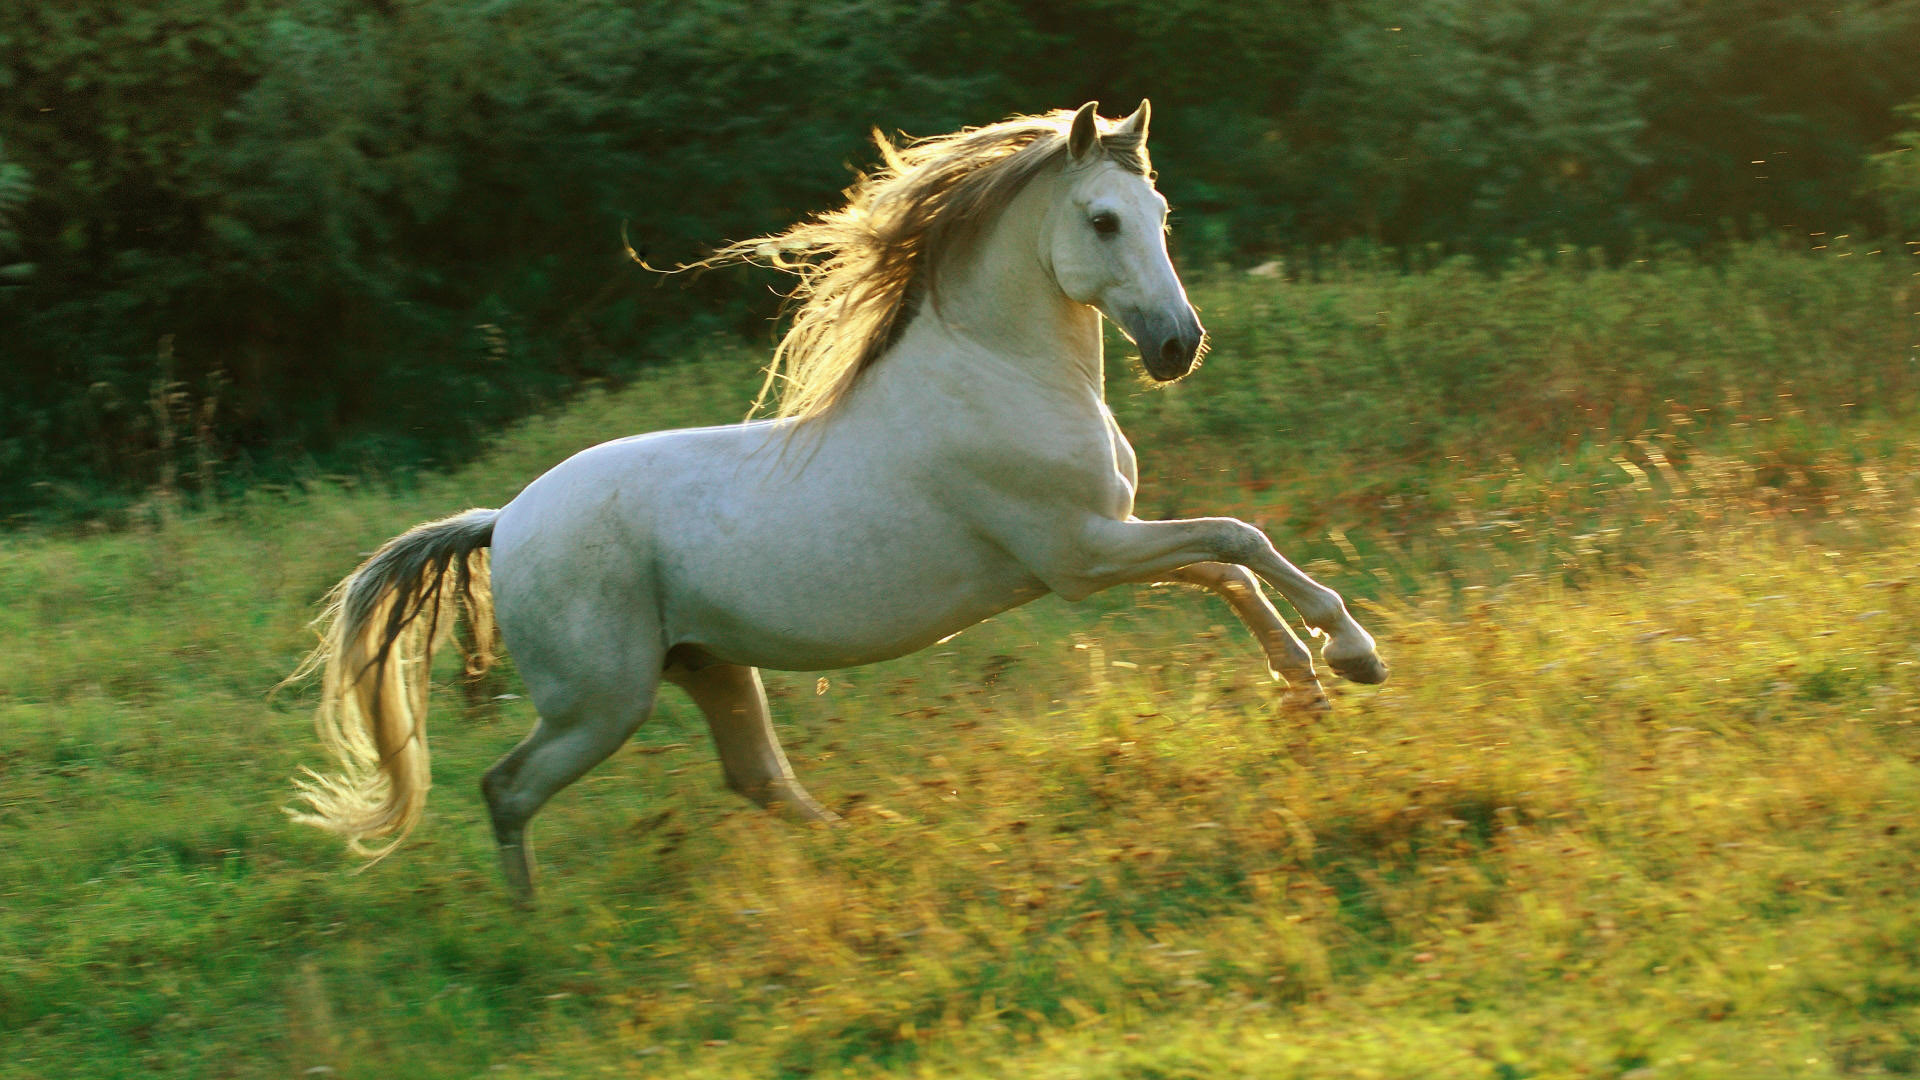 White Horse Full Hd Wallpaper Horses Running 1920x1080 Wallpaper Teahub Io